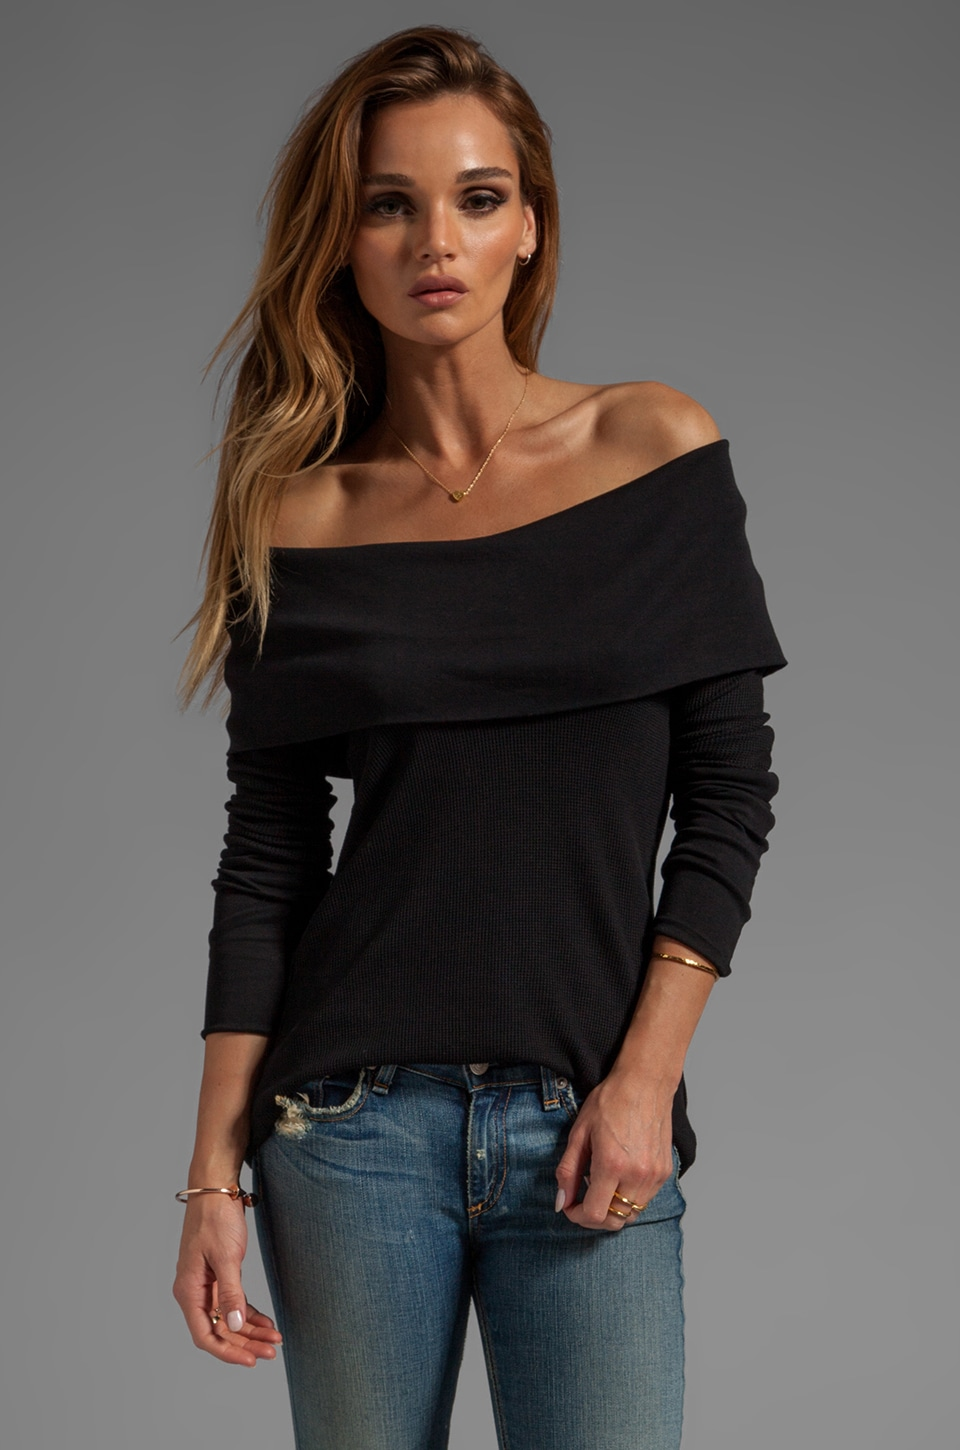 Bobi Thermal Cowl Neck Top in Black